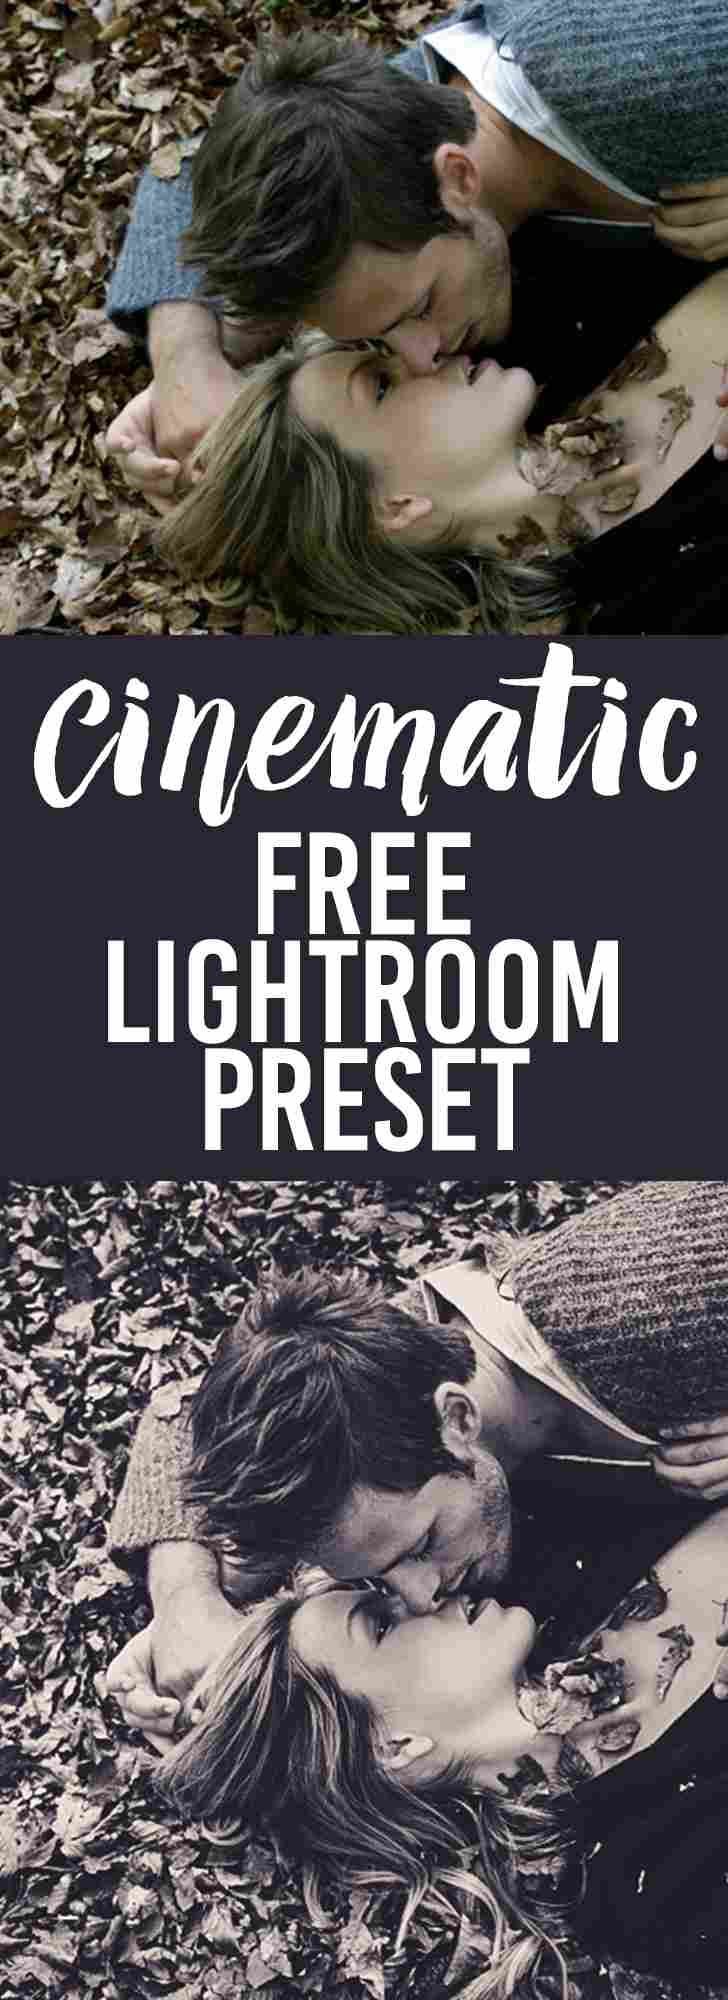 Free Lightroom Presets Cinematic